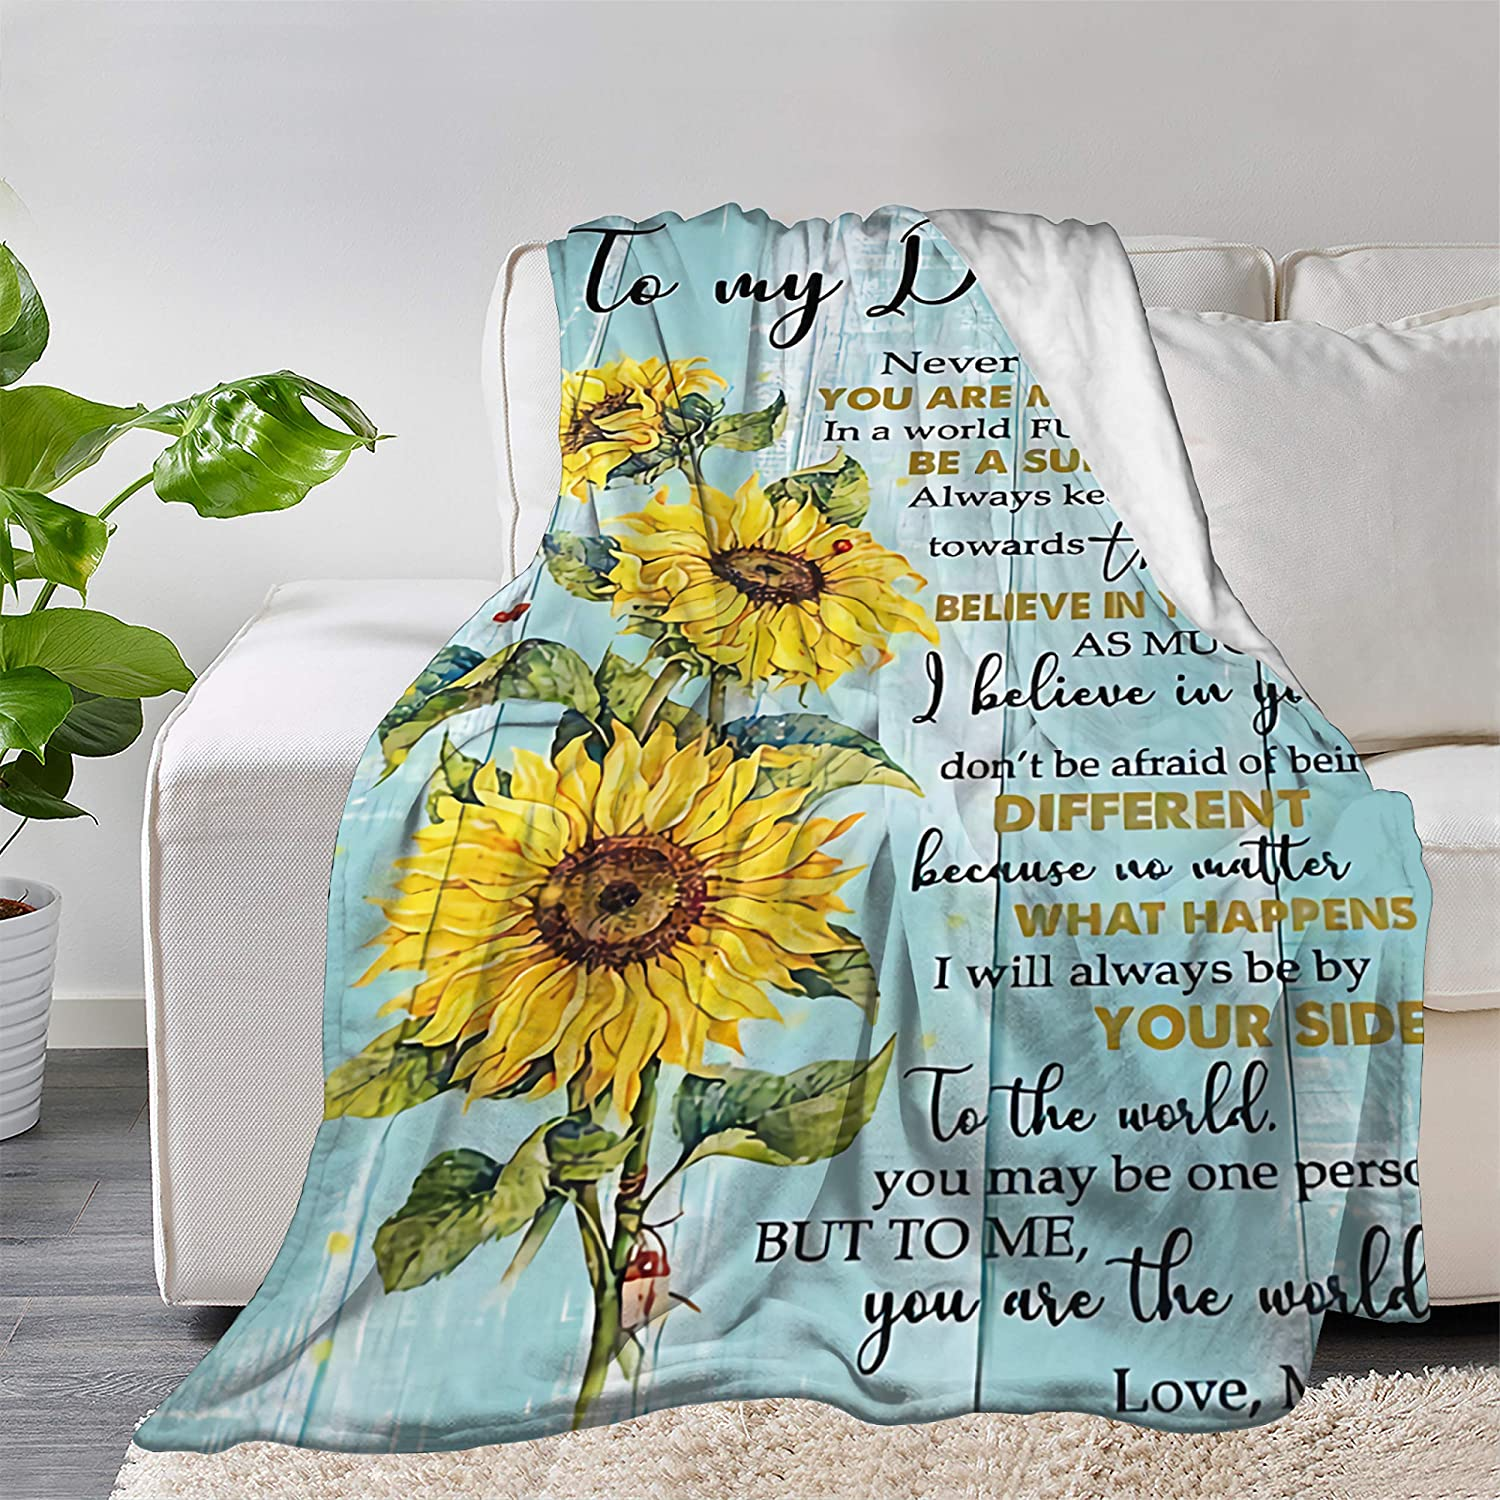 Multi-Styles to My Daughter Love Blanket Mom モデル着用 注目アイテム 人気急上昇 Quilt Throw Bedspre